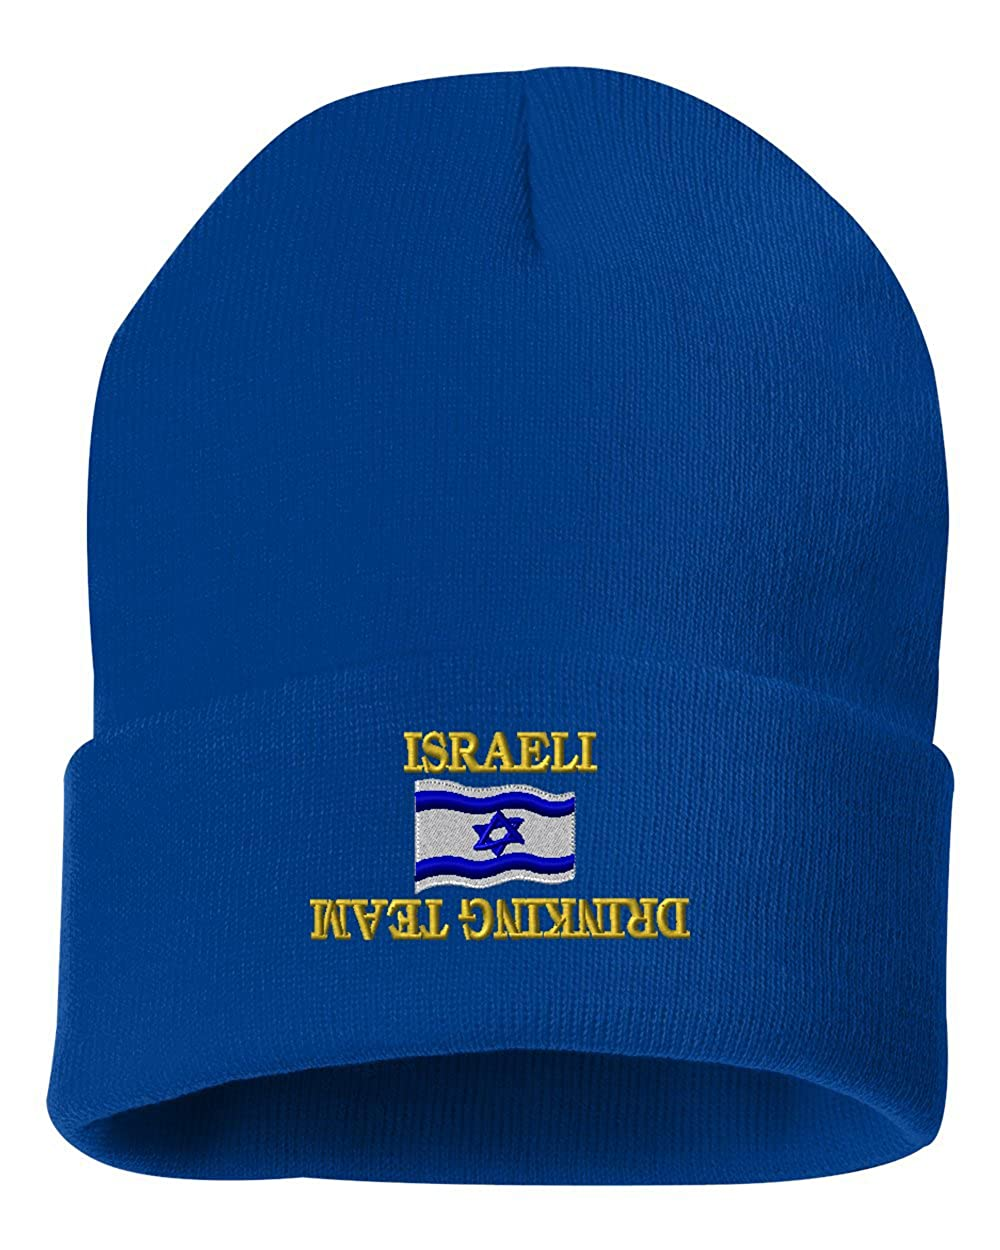 ISRAELI DRINKING TEAM Custom Personalized Embroidery Embroidered Beanie